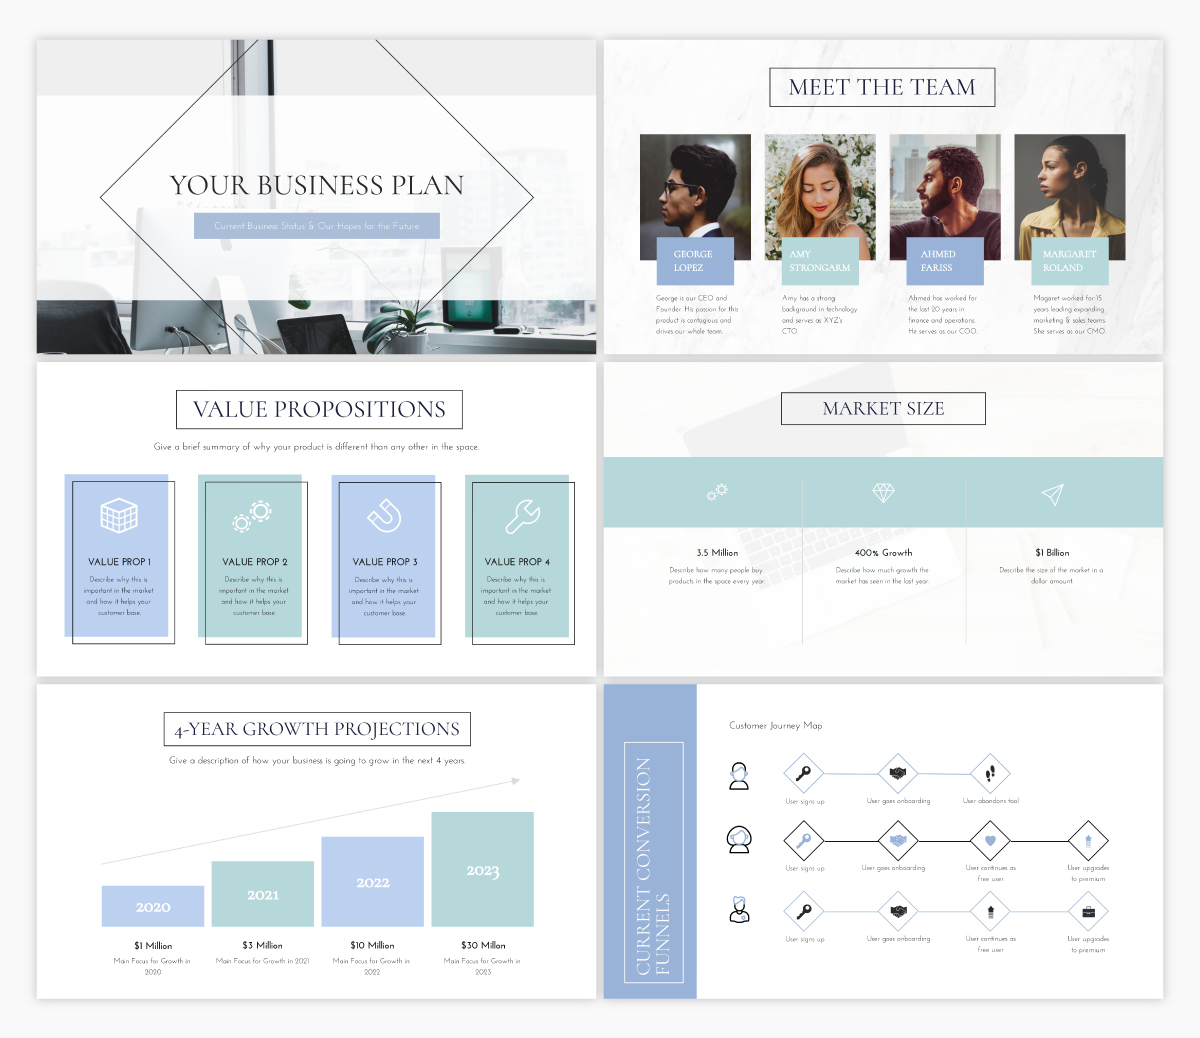 A business plan presentation template available in Visme.